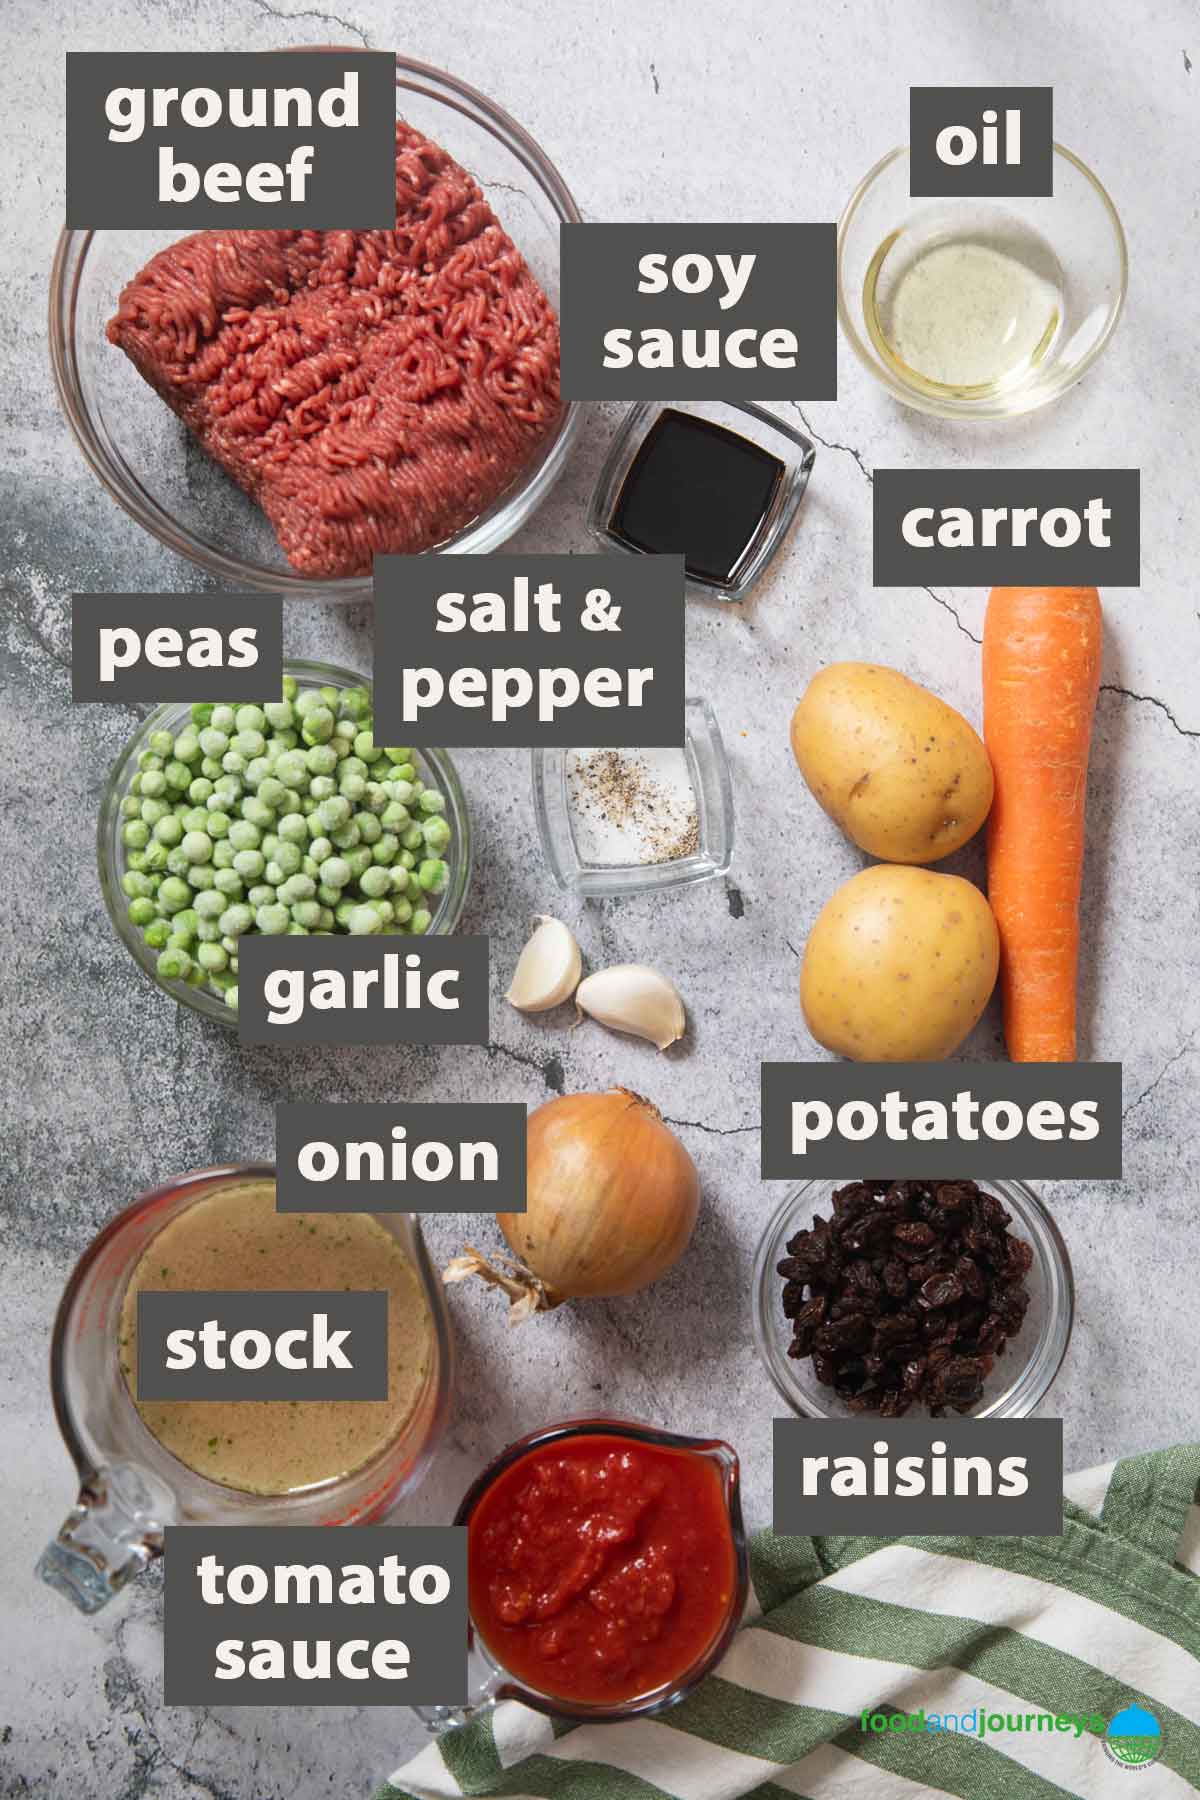 An image showing all the ingredients you need to prepare Filipino picadillo at home.